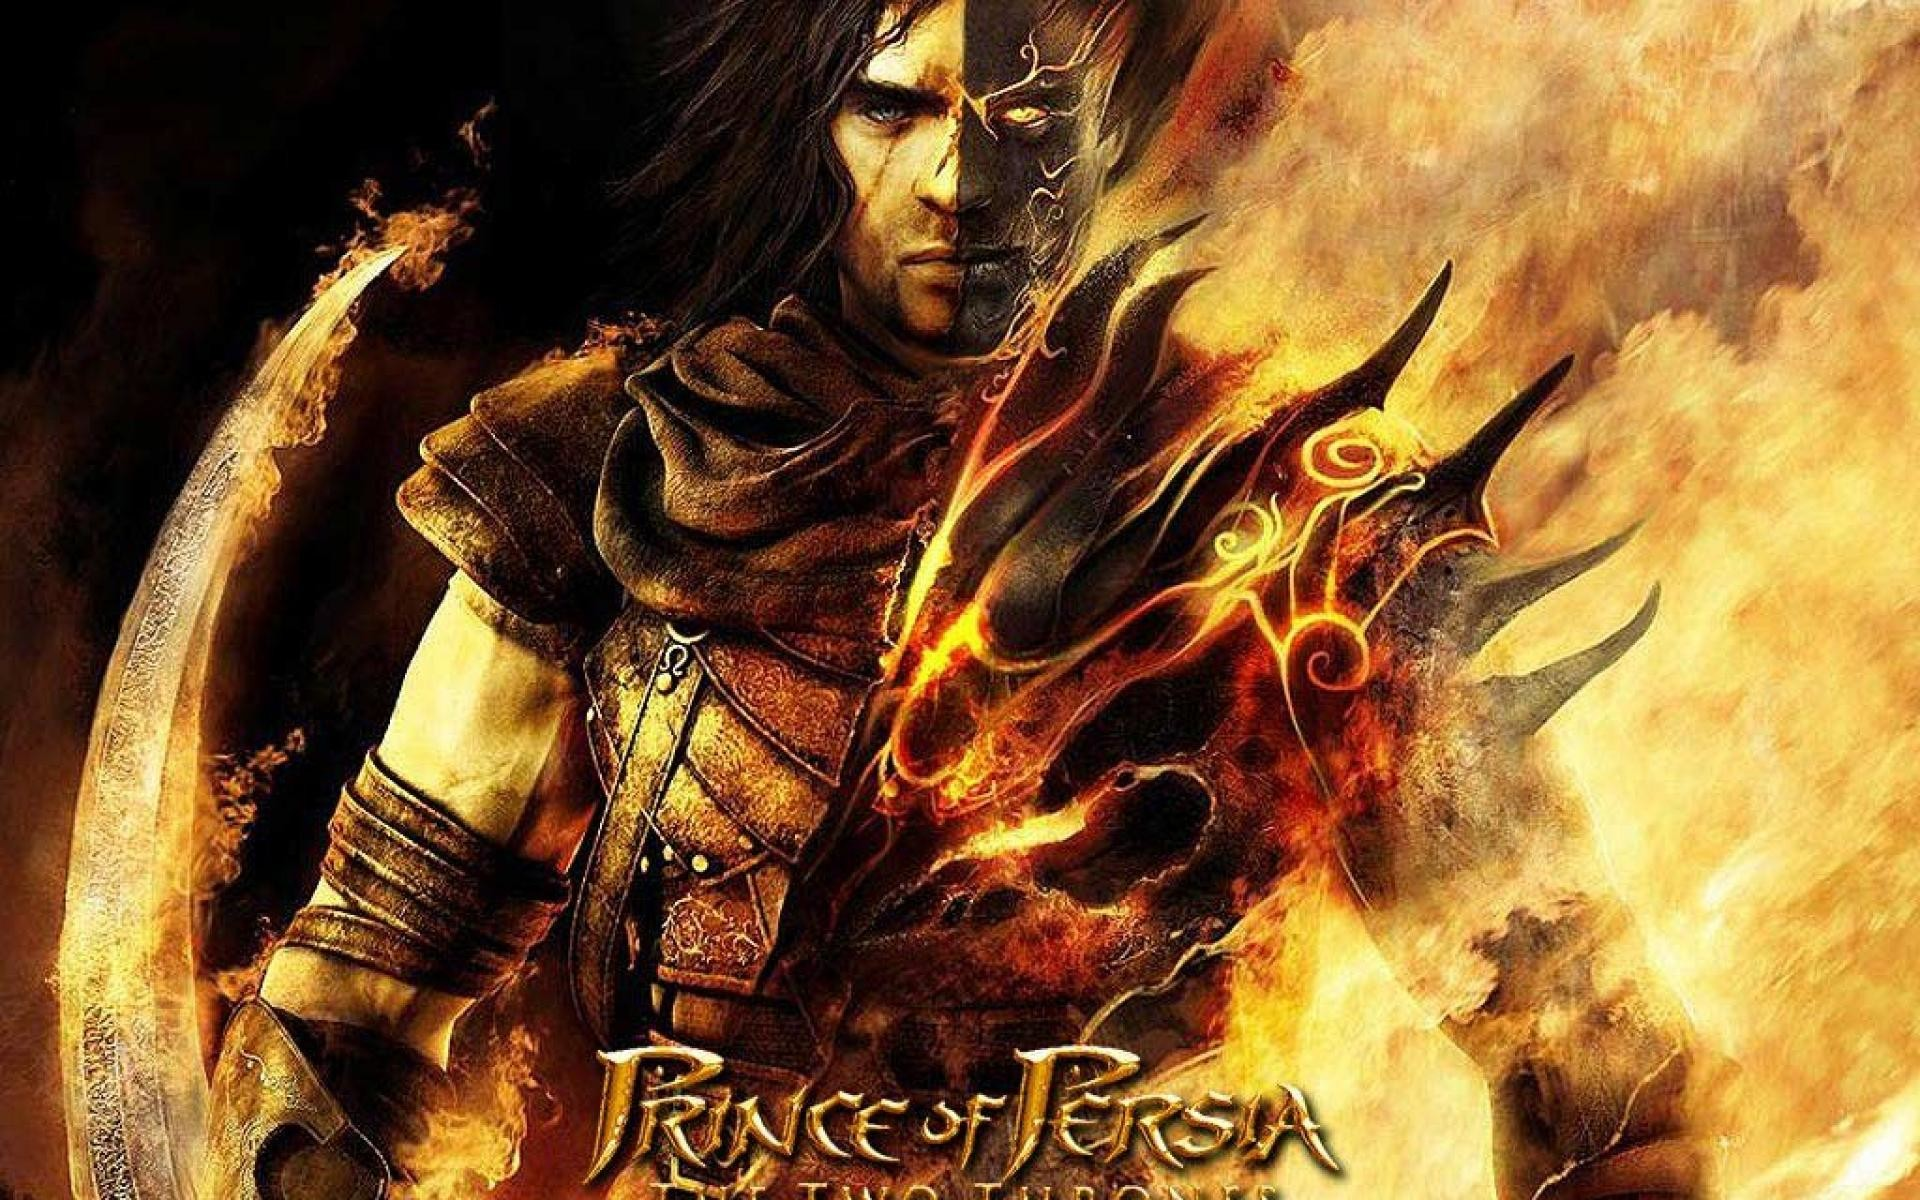 1920x1200 Prince Of Persia Pc Game Hd Wallpaper High Quality Full The Two Thrones  Laptop